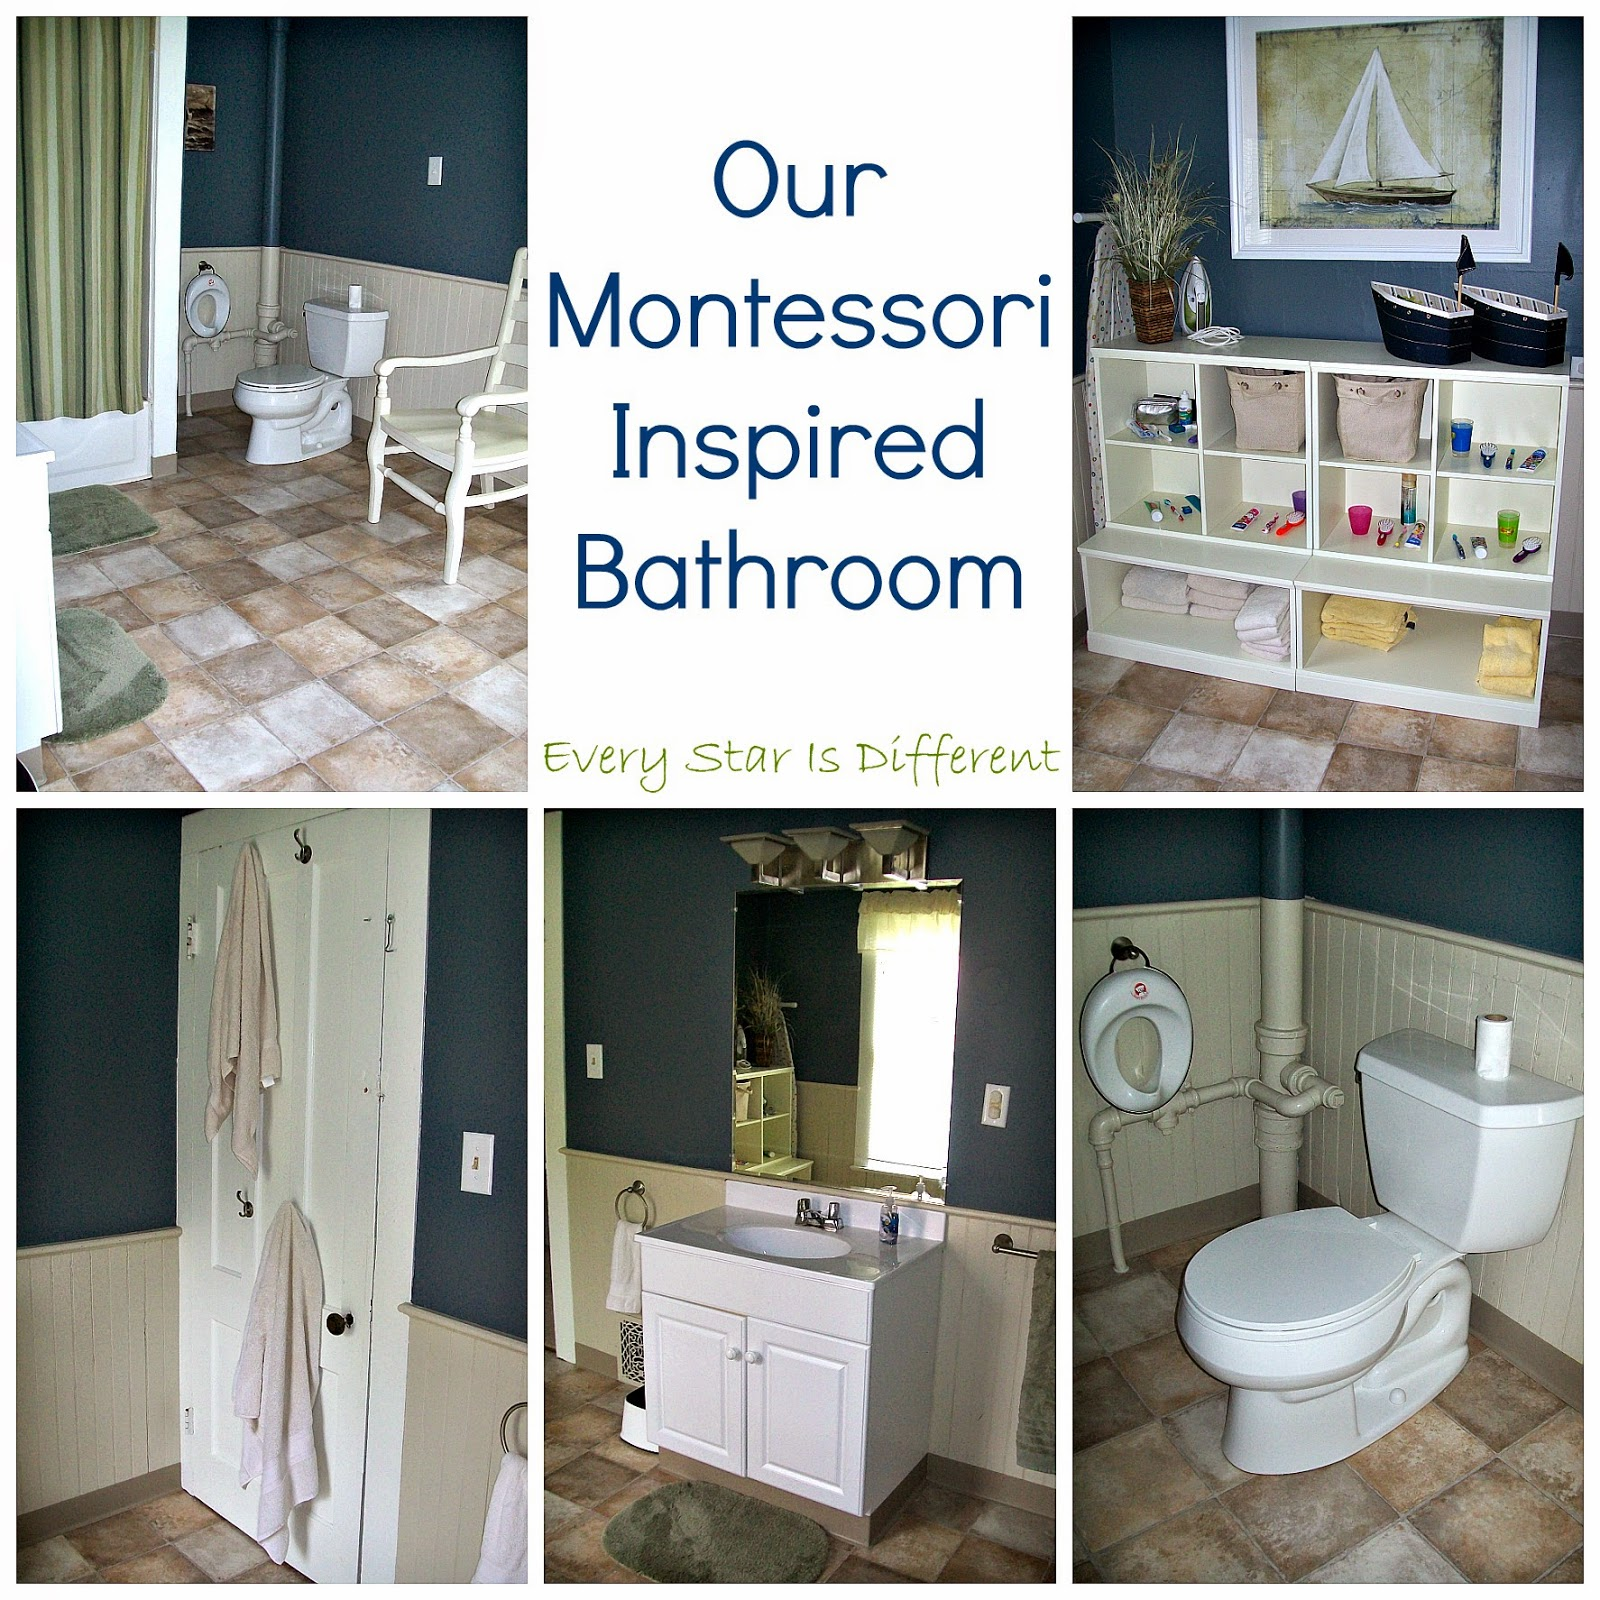 Our Montessori Inspired Bathroom Every Star Is Different